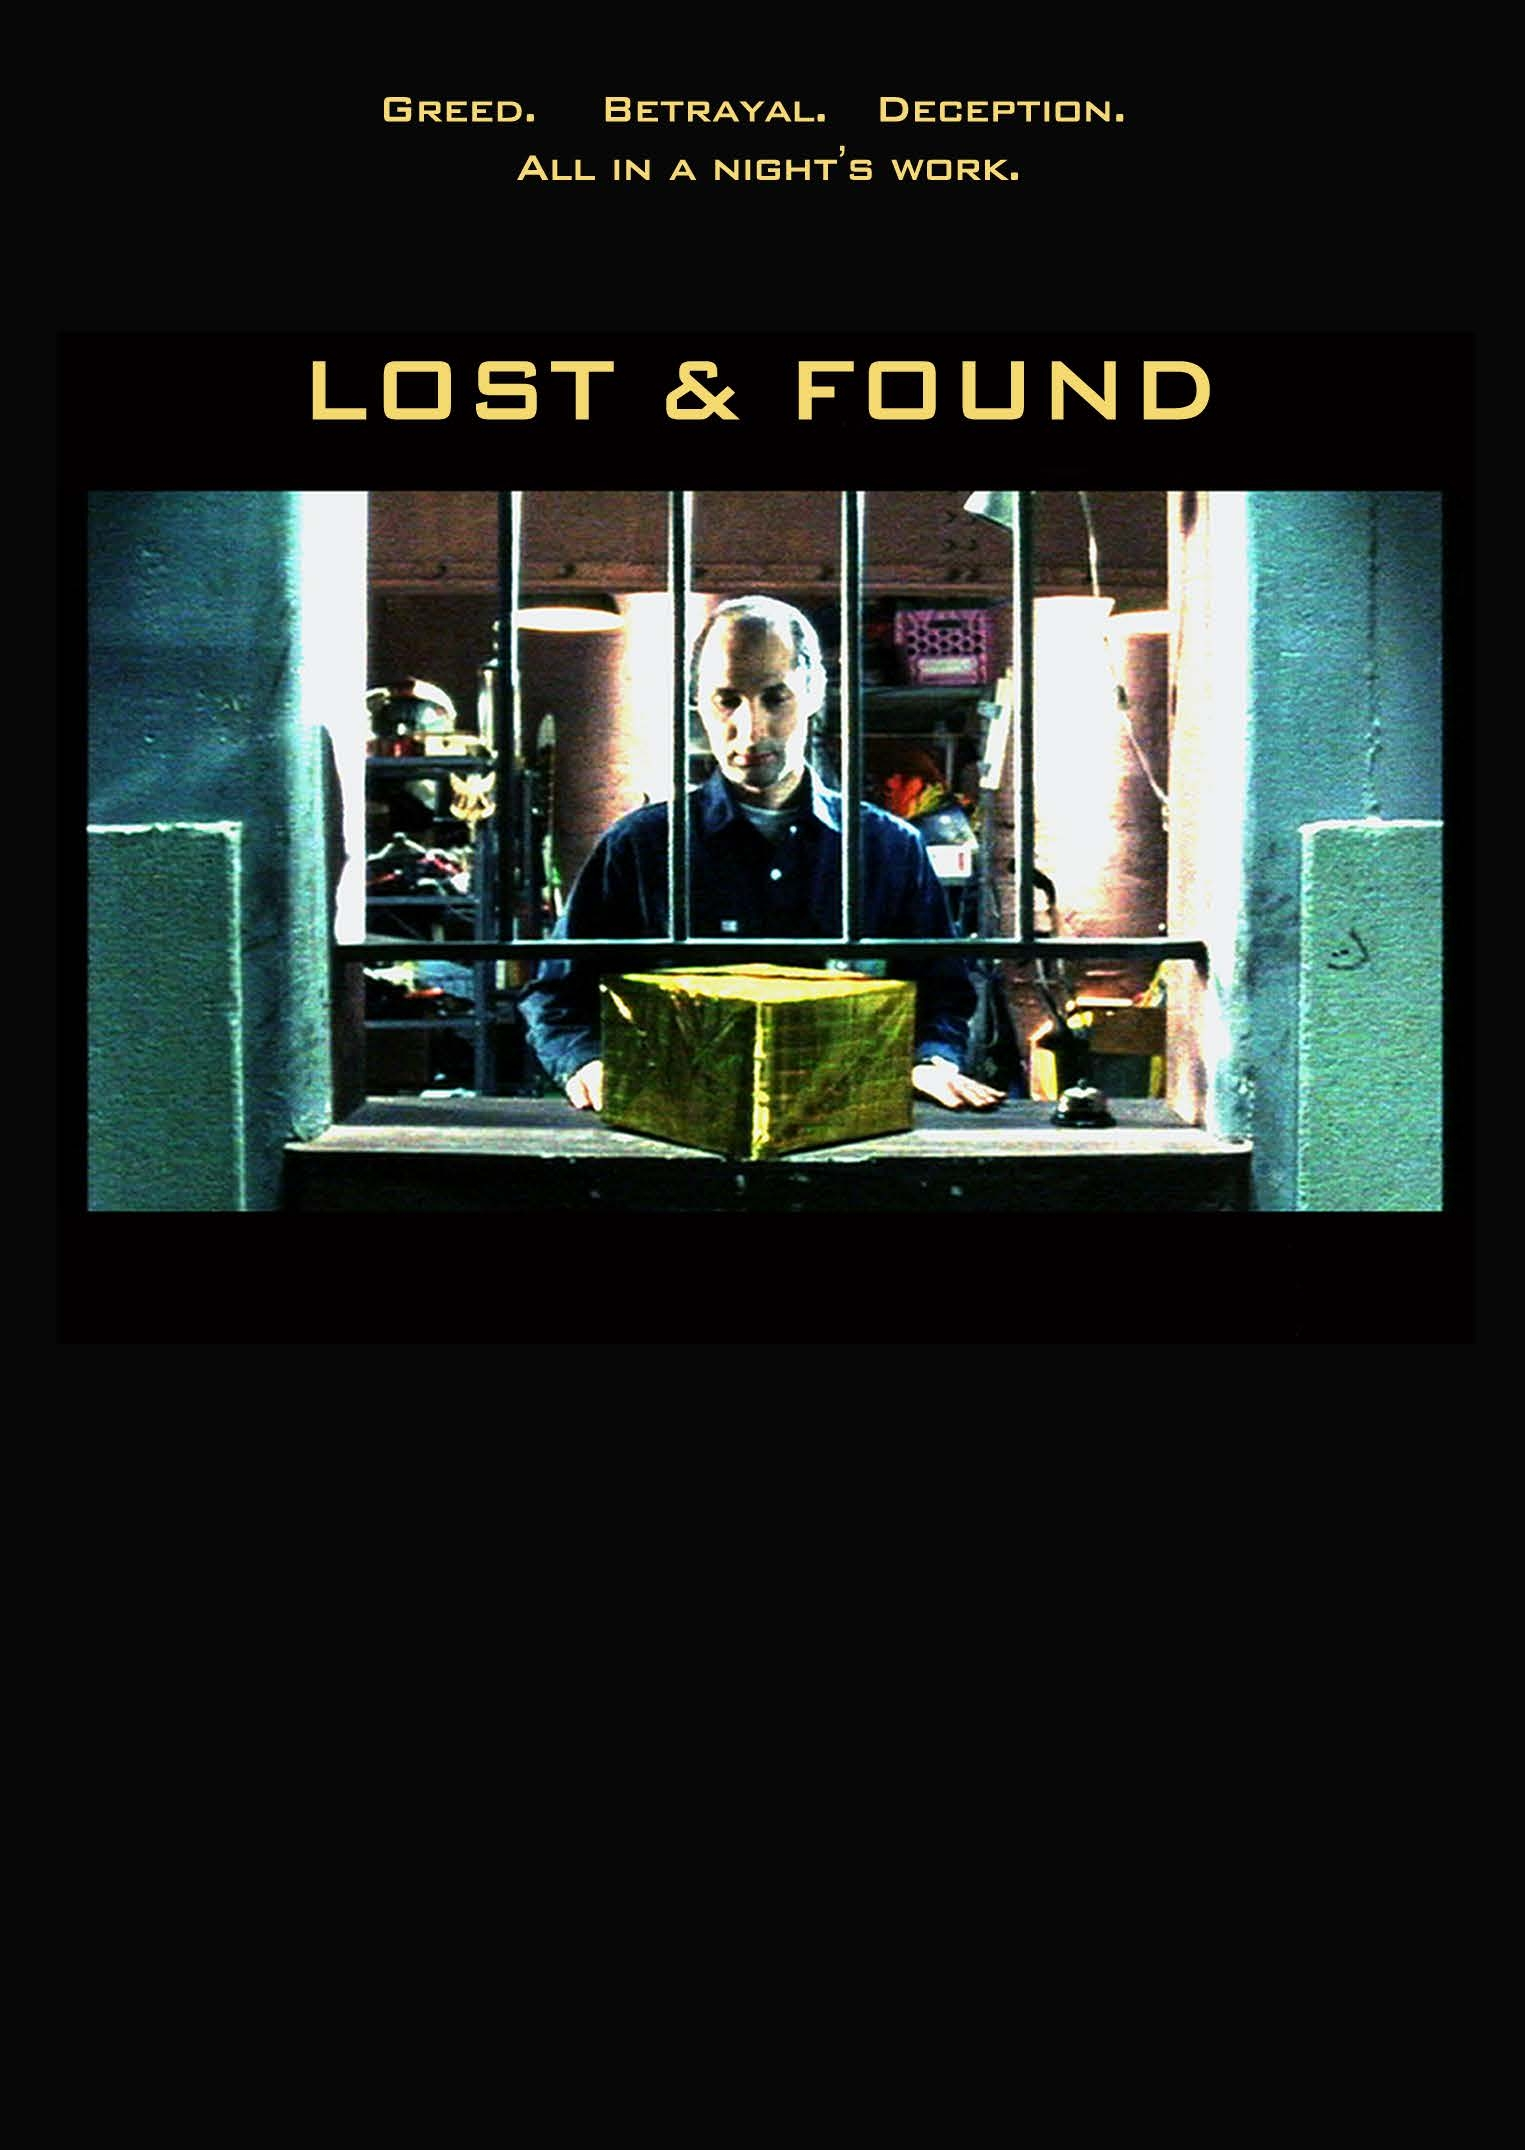 Lost and Found Poster Art.jpg